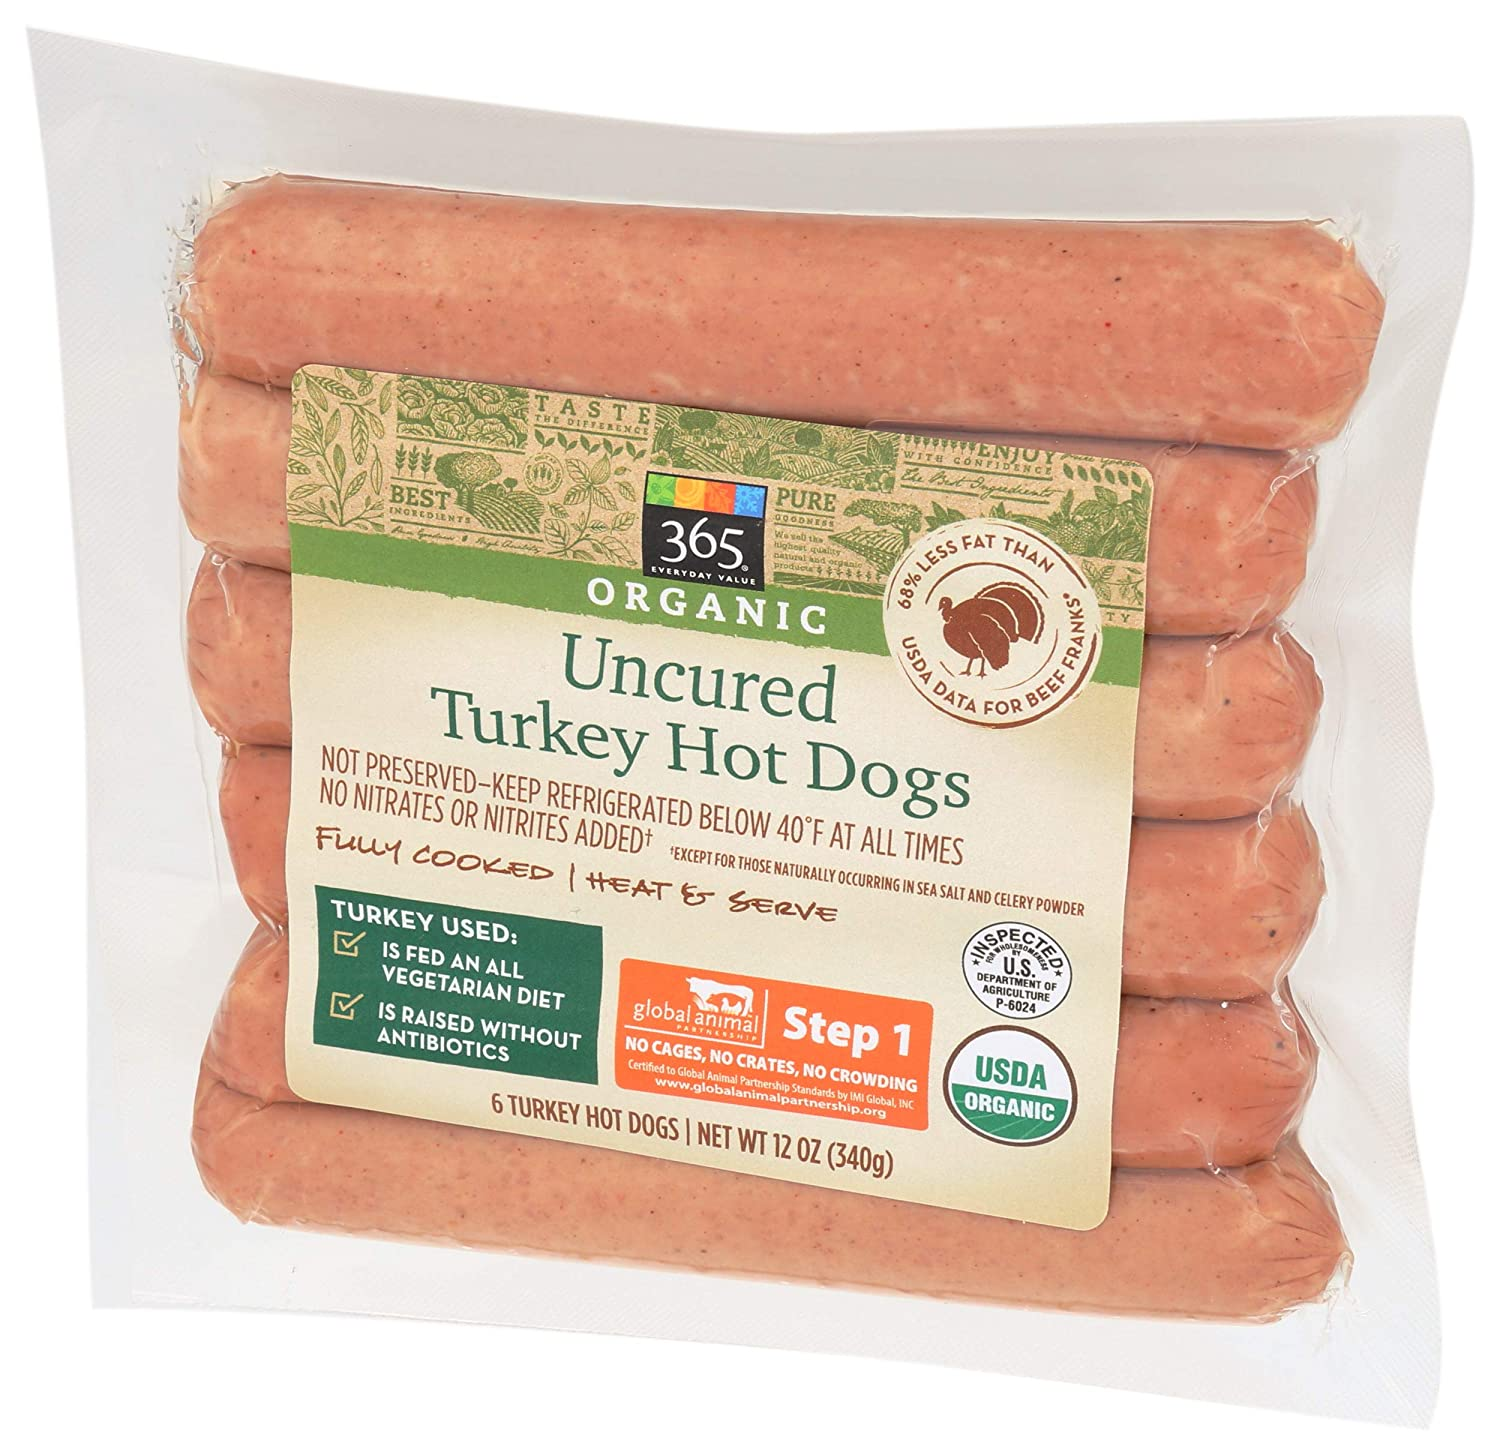 365 by WFM Turkey Hot Dog Step Uncured 1 Direct sale Limited time for free shipping of manufacturer Ounce Organic 12